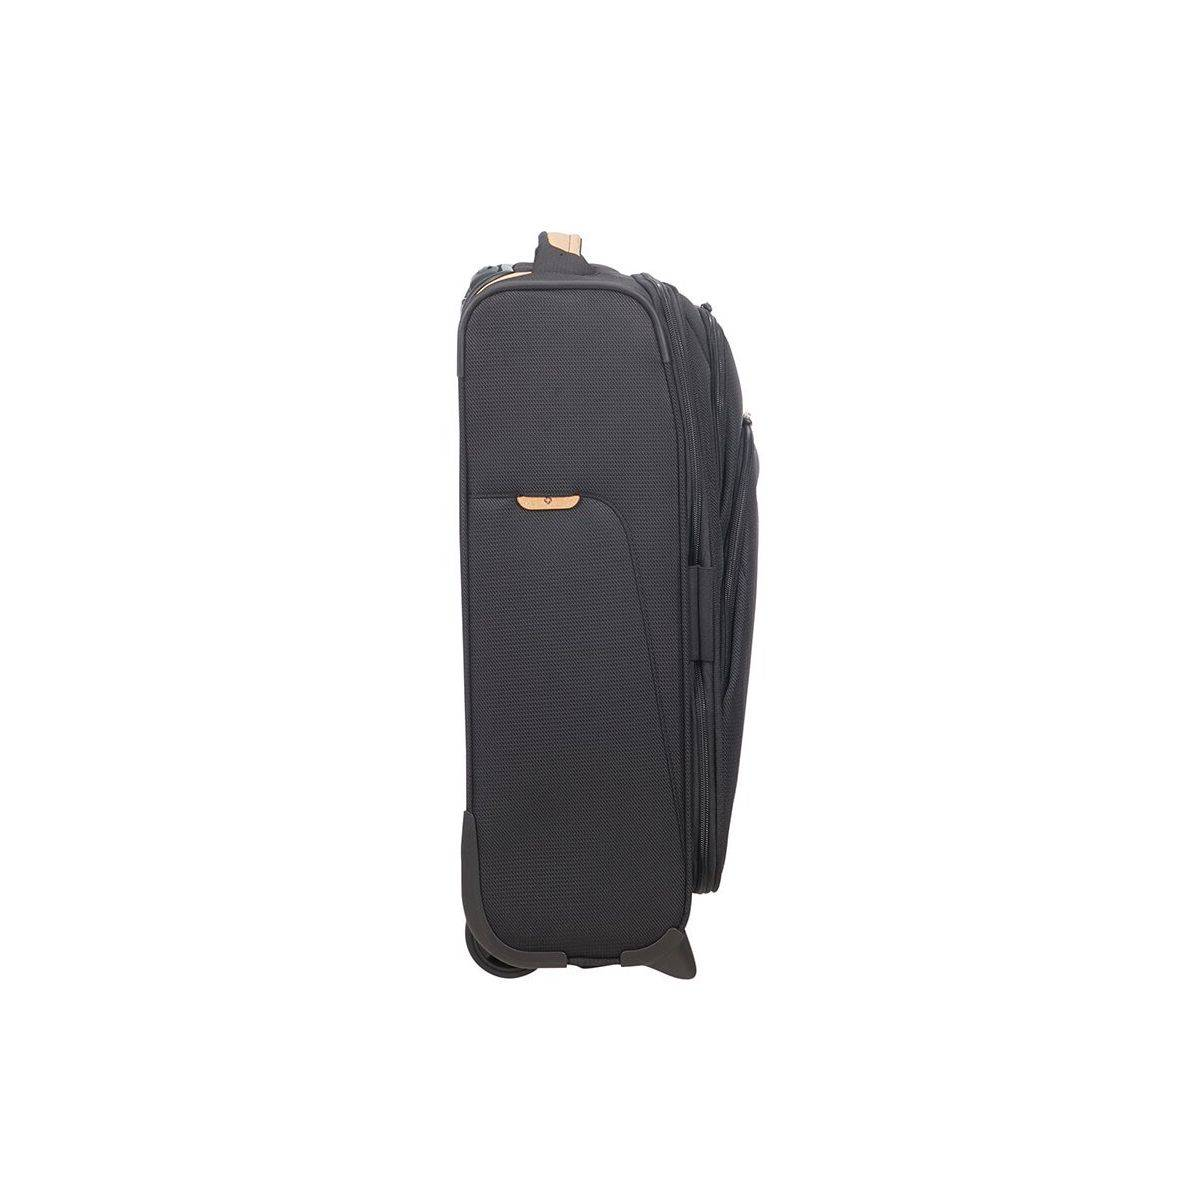 Sng 55cm 48 Souple Cabine 2 Spark Eco115756 Samsonite Valise 557 Taille Extensible Roues Litres 80kwOPnX